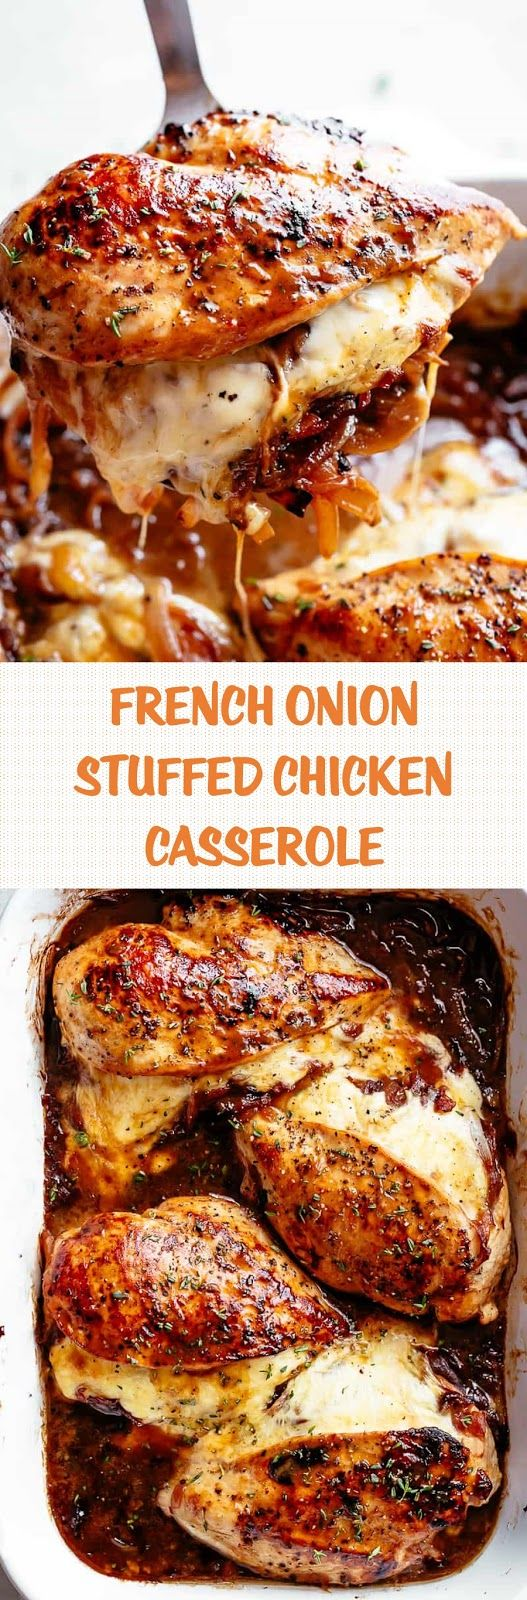 French Onion Stuffed Chicken Casserole makes for a delicious dinner! Juicy, succulent chicken breasts stuffed with caramelized onions and glorious melted cheese. A perfect weeknight or weekend dinner. Low Carb and Keto approved!